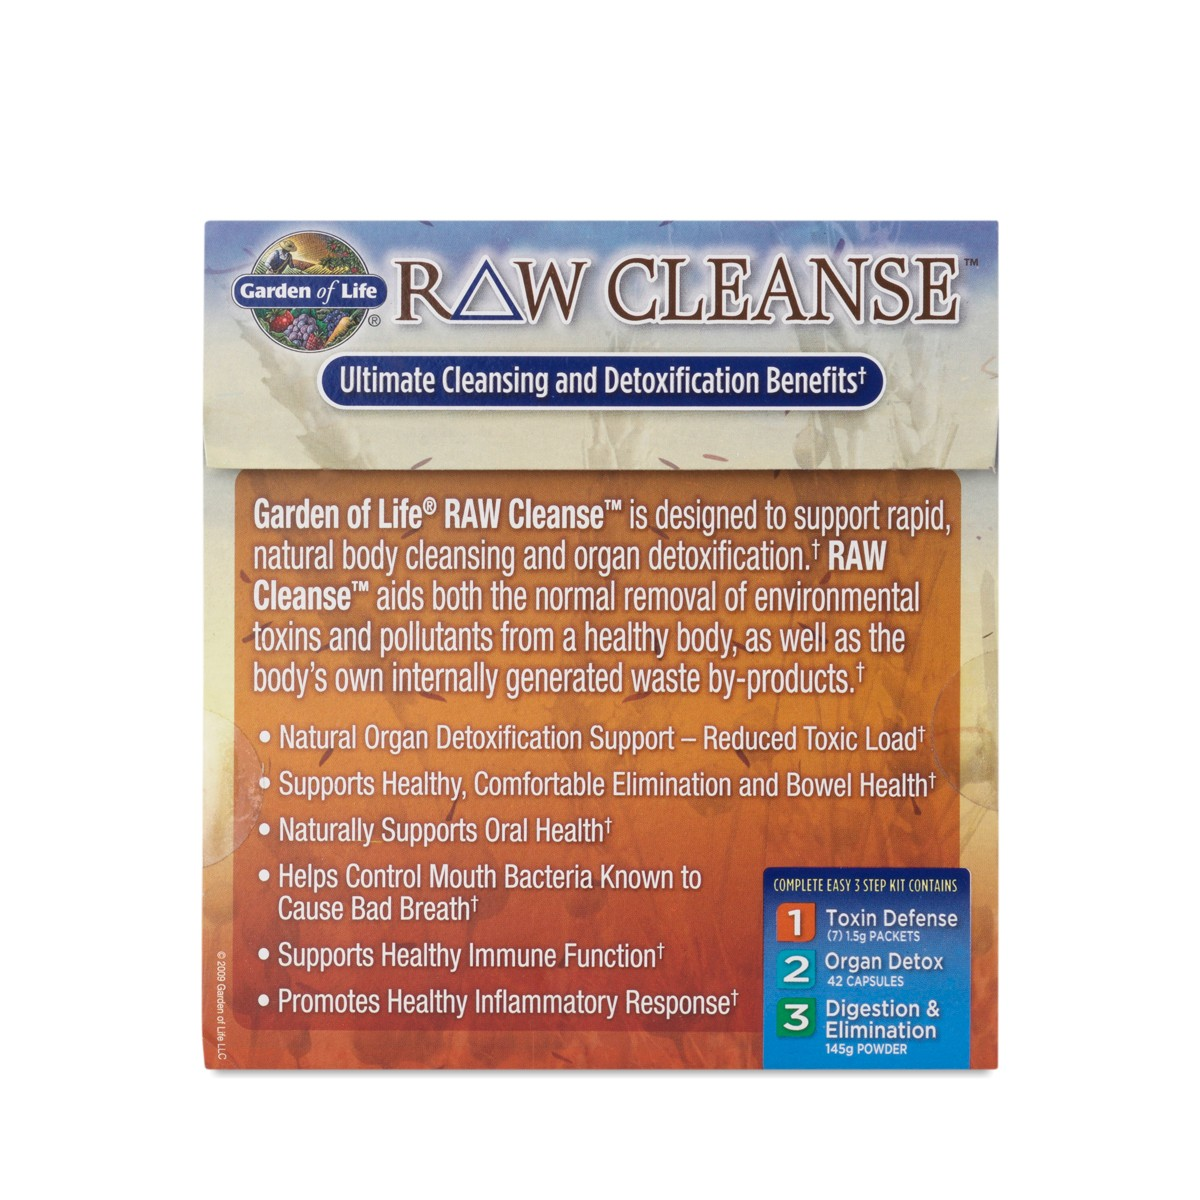 Raw cleanse system by garden of life thrive market for Garden of life raw cleanse reviews